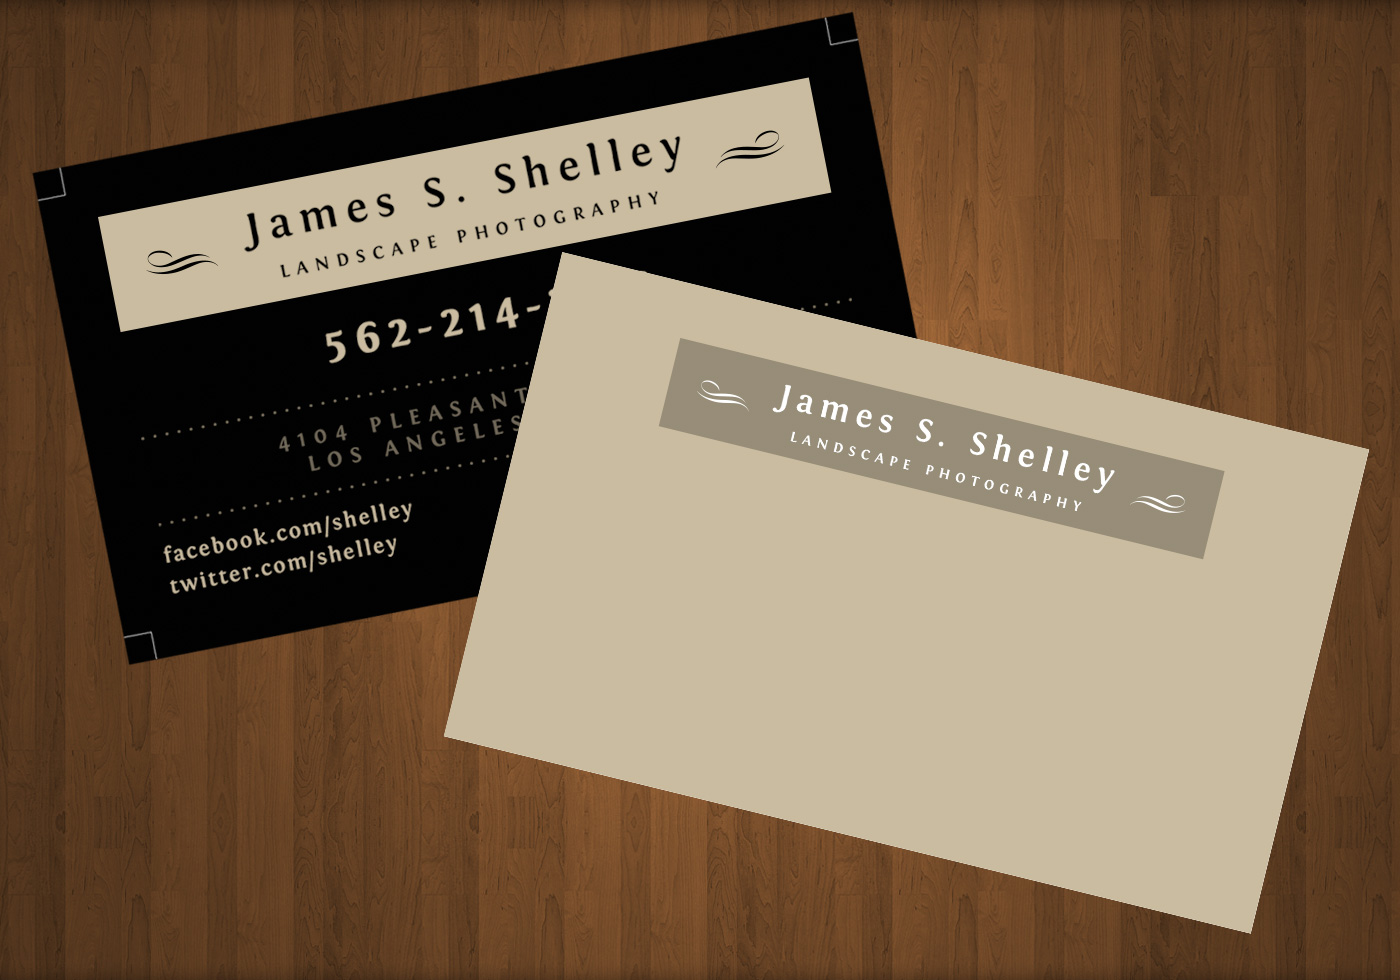 Photography Business Card PSD Template - Free Photoshop Brushes at ...